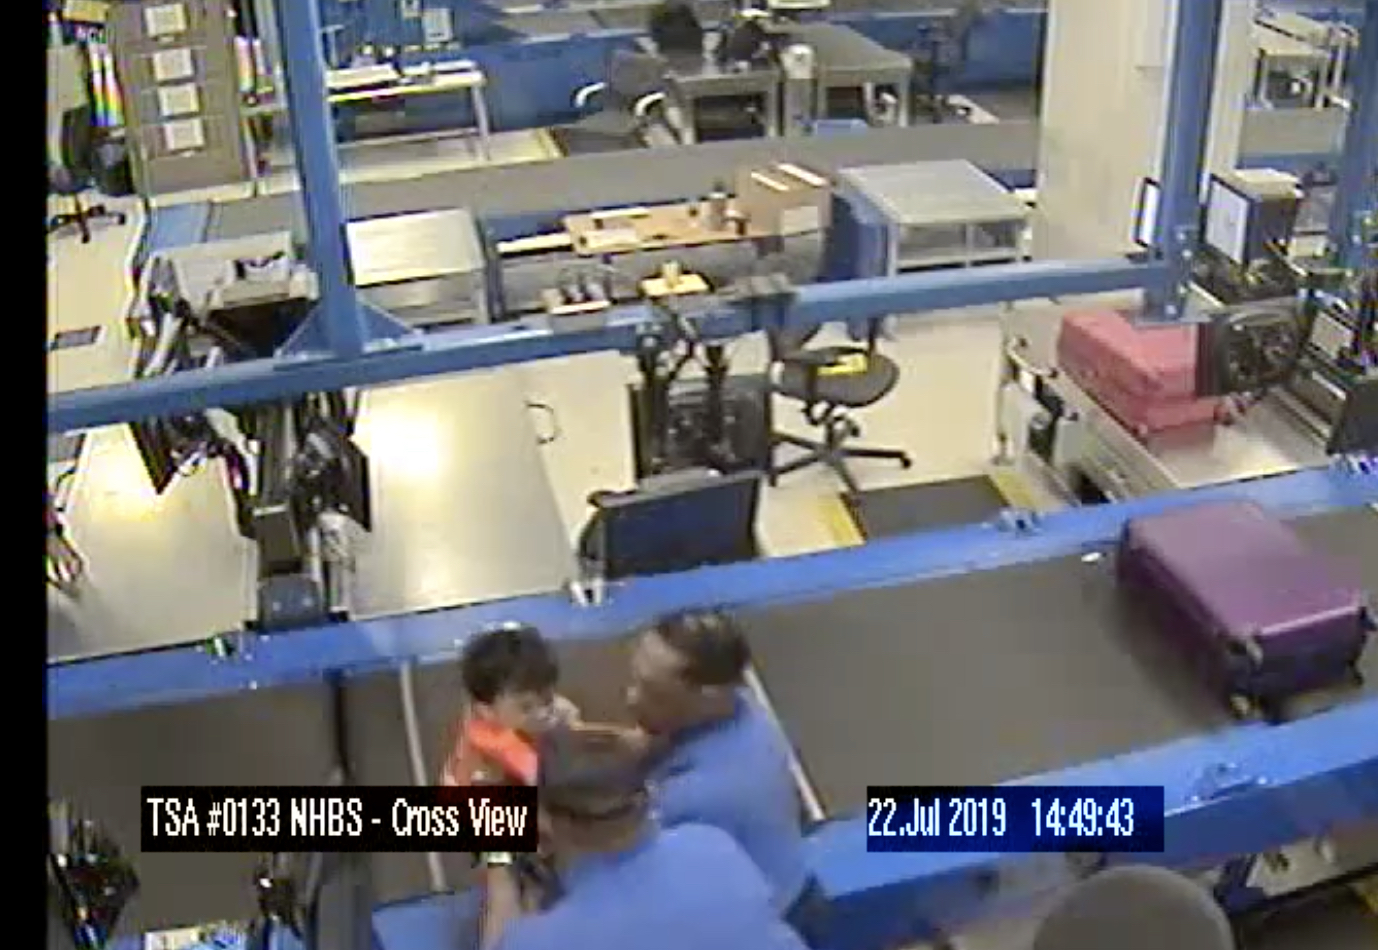 Surveillance Cameras Show Toddler on Atlanta Airport Conveyer Belt